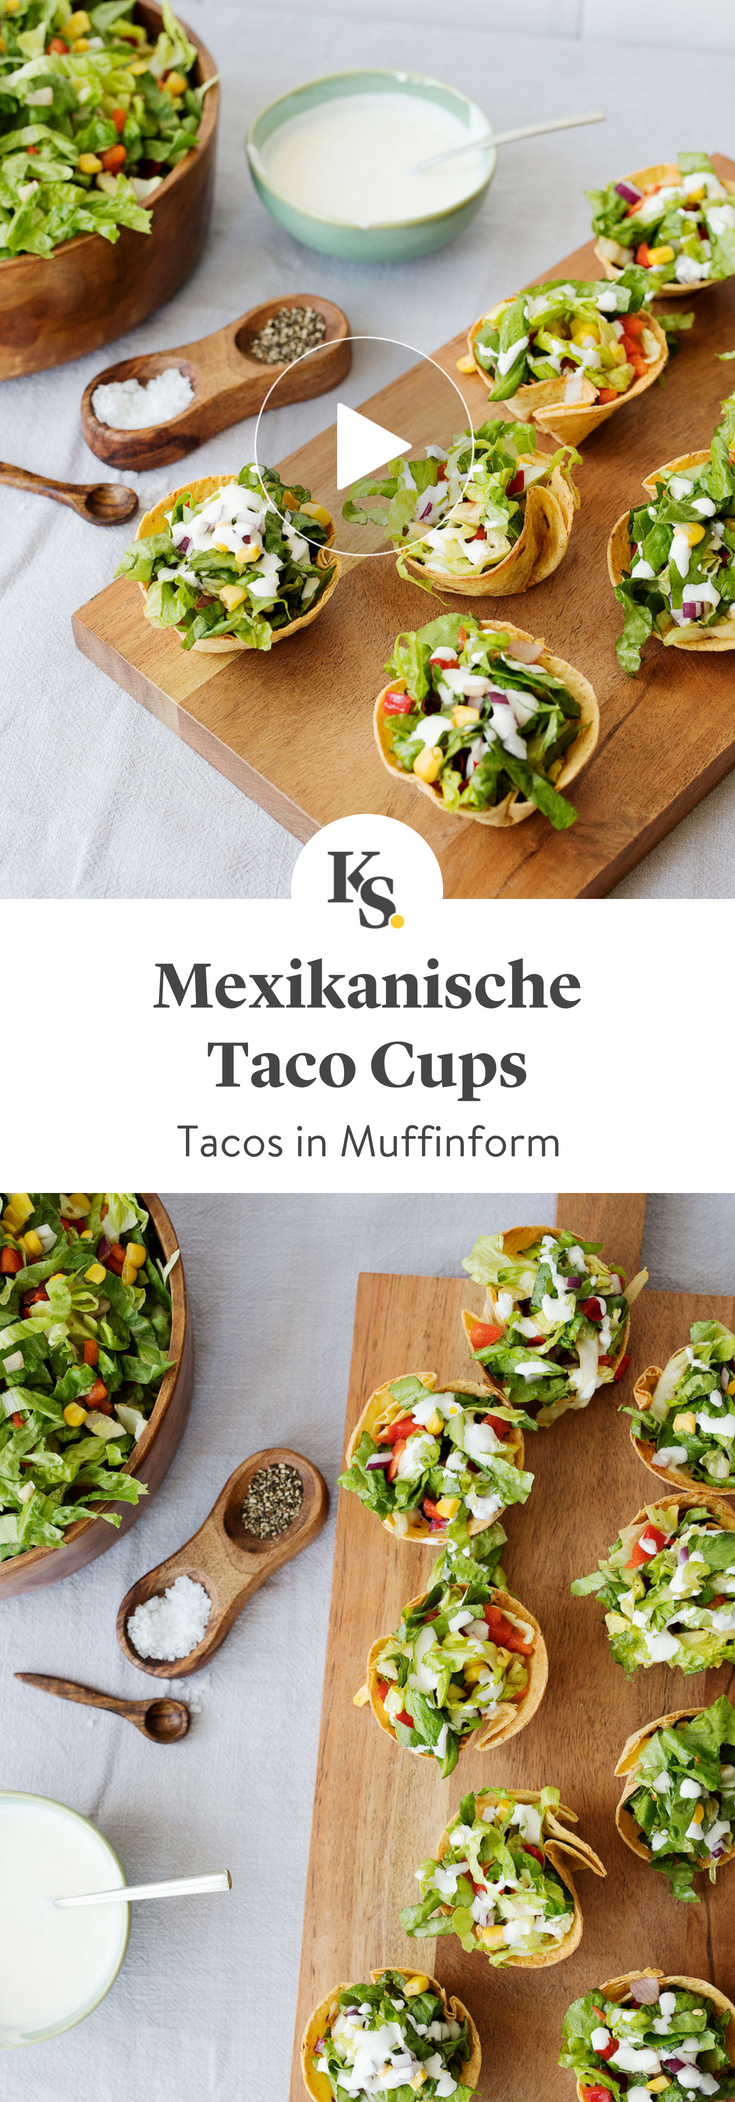 Photo of Mexican Taco Cups Recipe with video | Kitchen stories